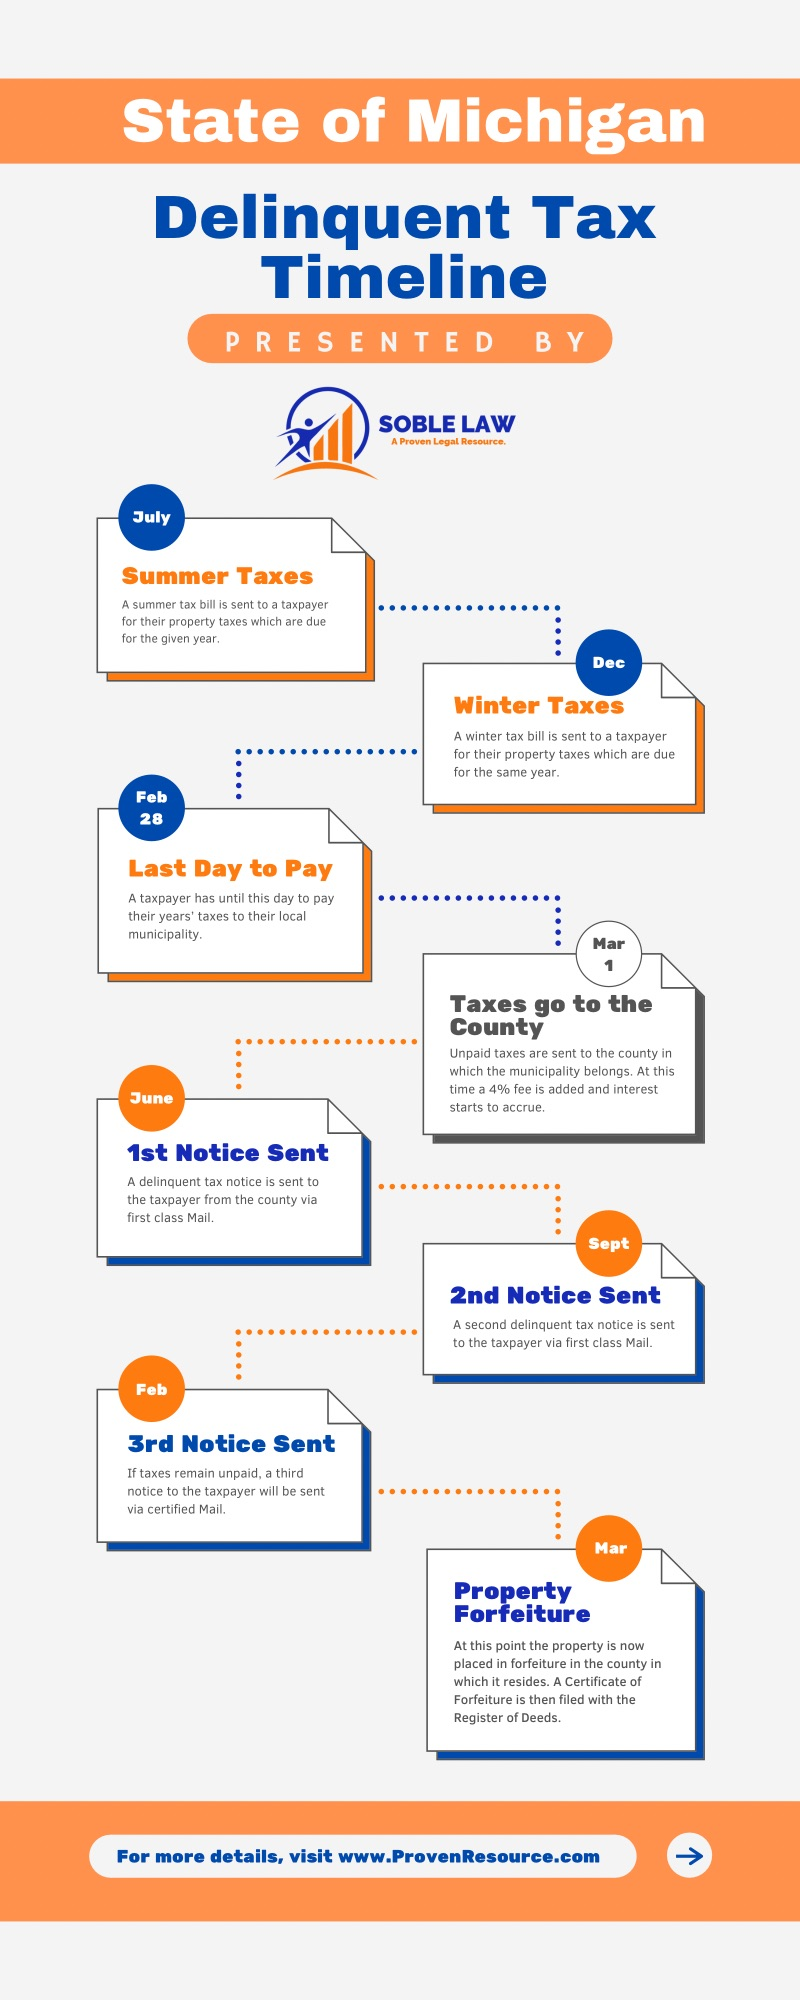 When taxes go unpaid, the state has a timeline as to what fees you'll incur and what will happen to your property.